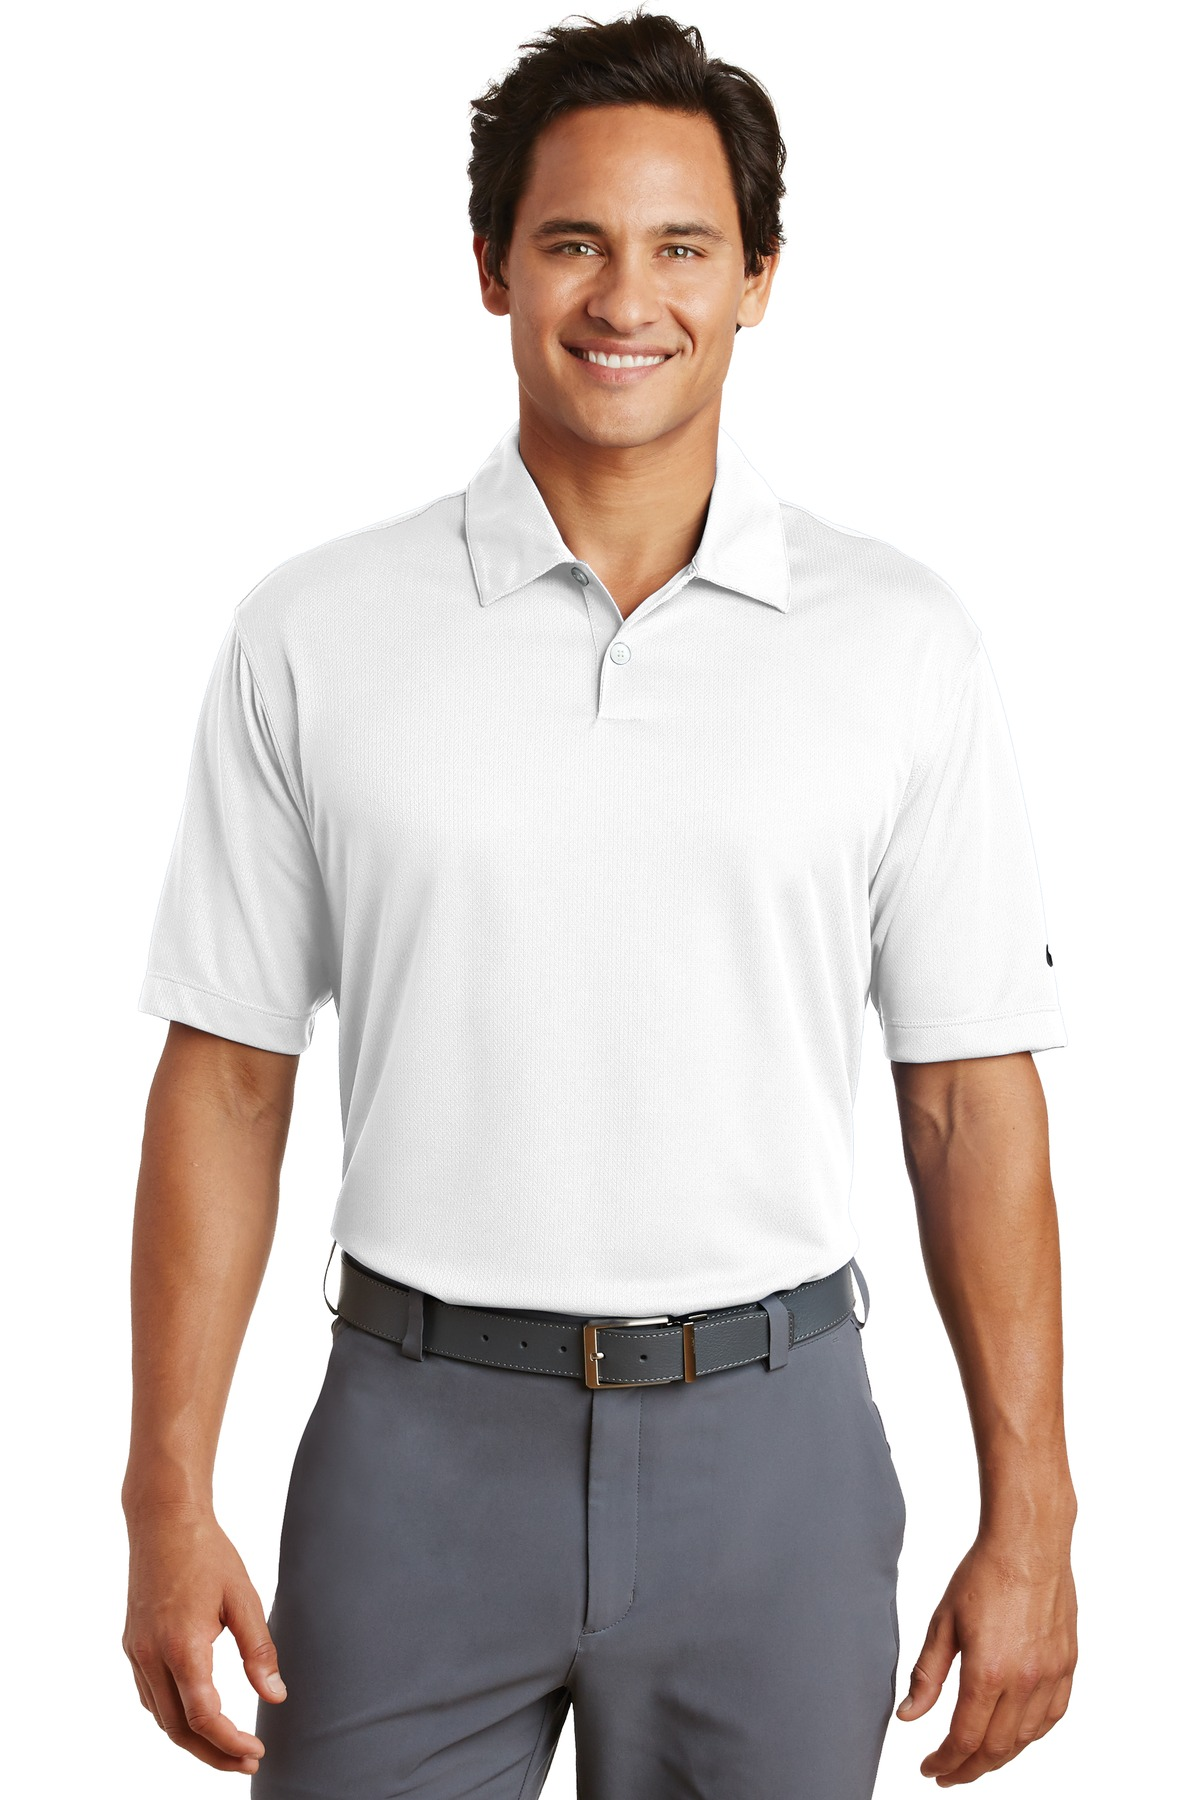 Nike Dri-FIT Pebble Texture Polo. 373749 - White